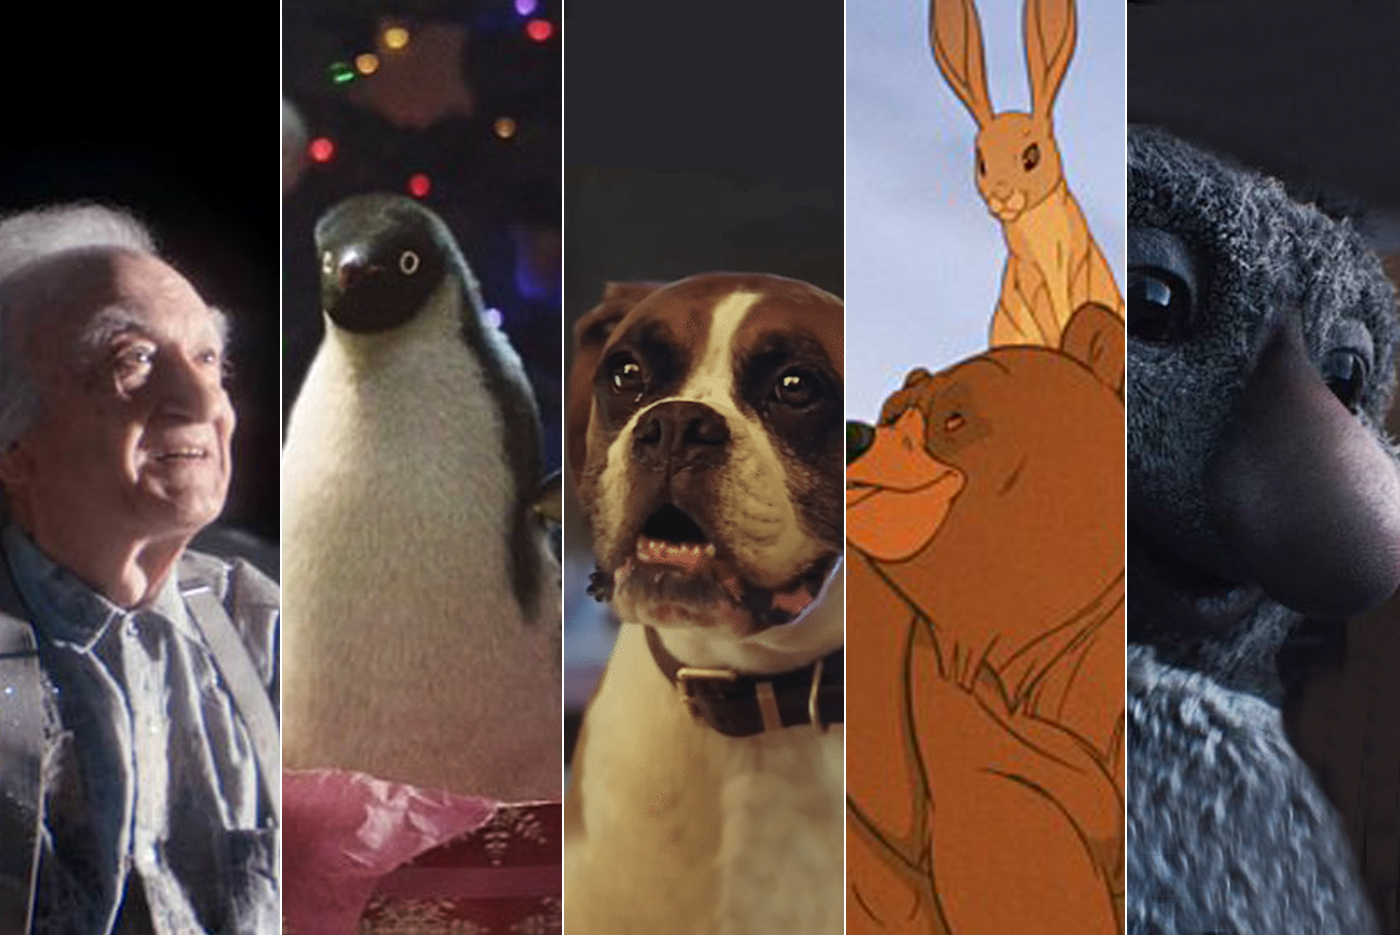 Stills from the John Lewis Christmas Adverts